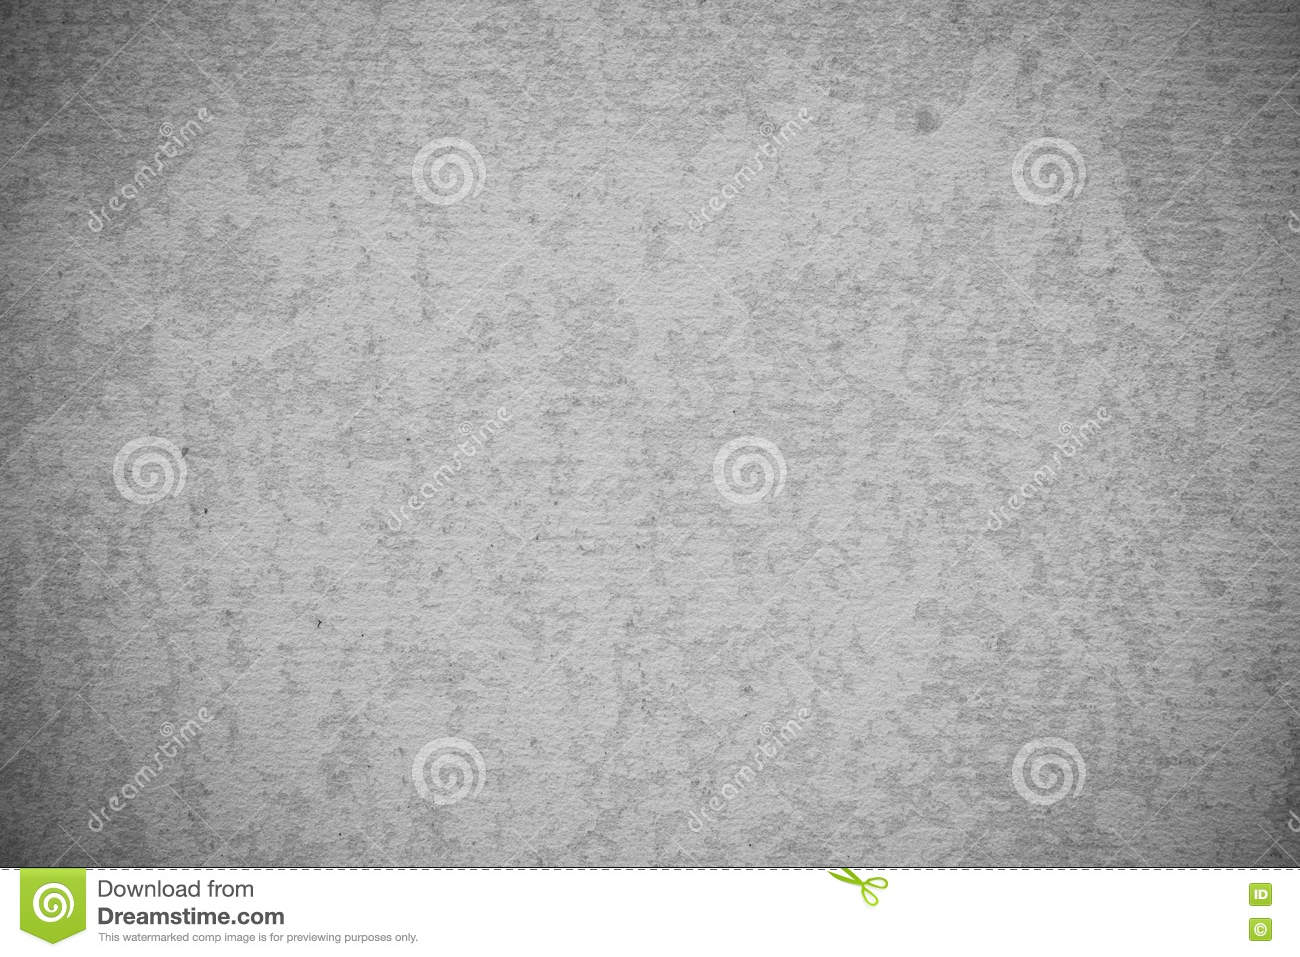 Gypsum Board Texture : Abstract old gypsum board texture background stock photo